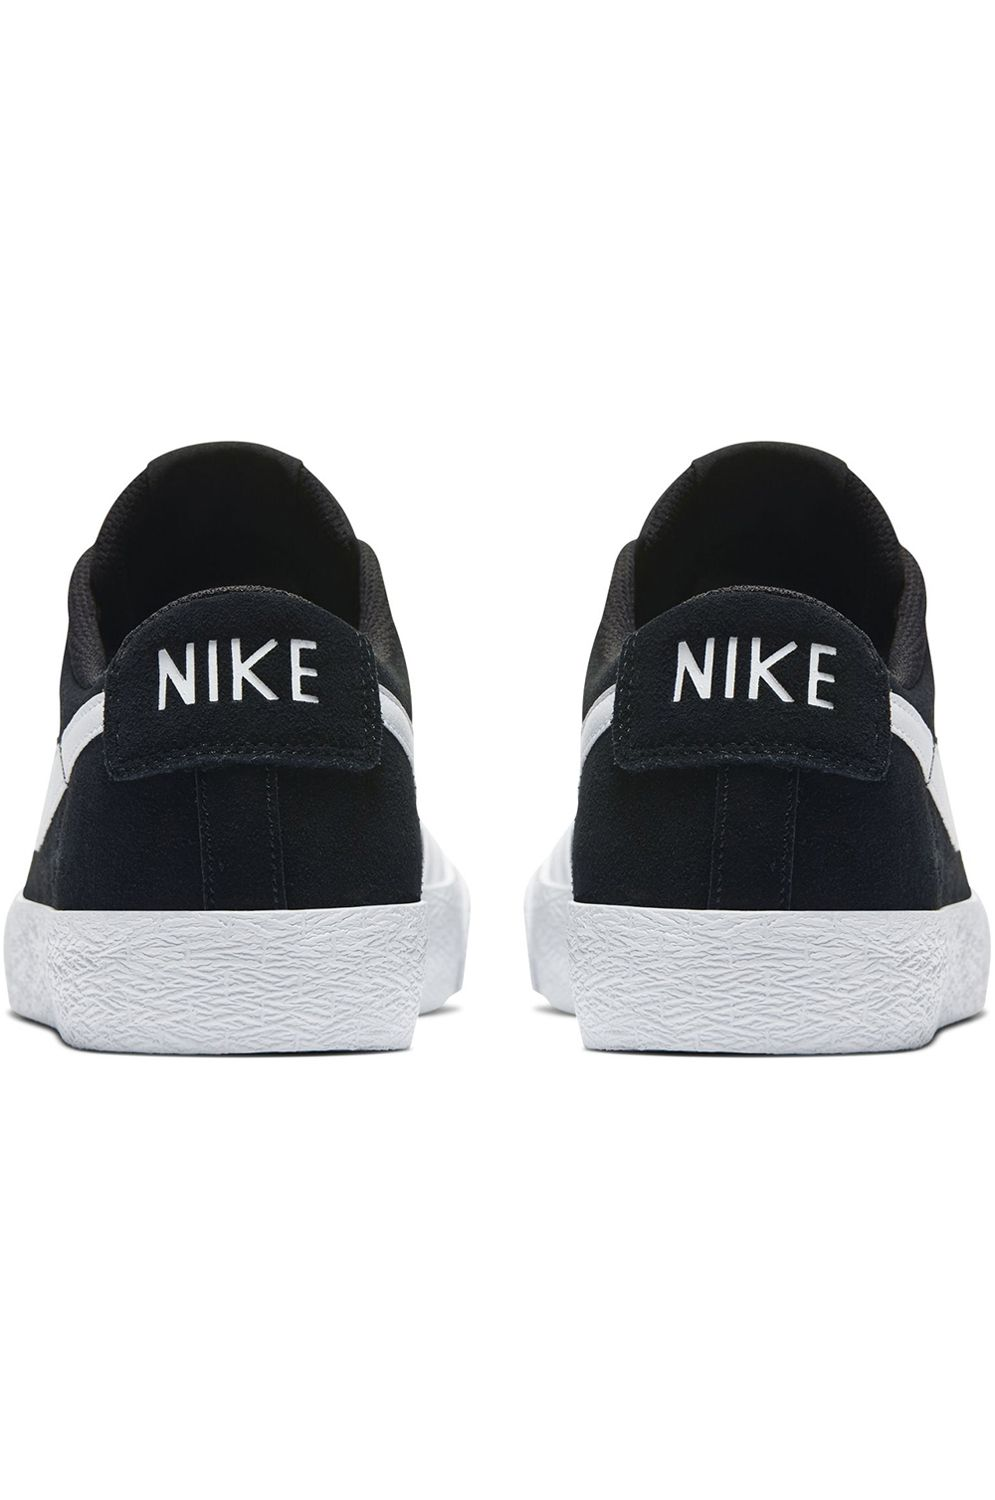 Tenis Nike Sb NIKE SB BLAZER ZOOM LOW XT Black/White-Gum Lt Brown